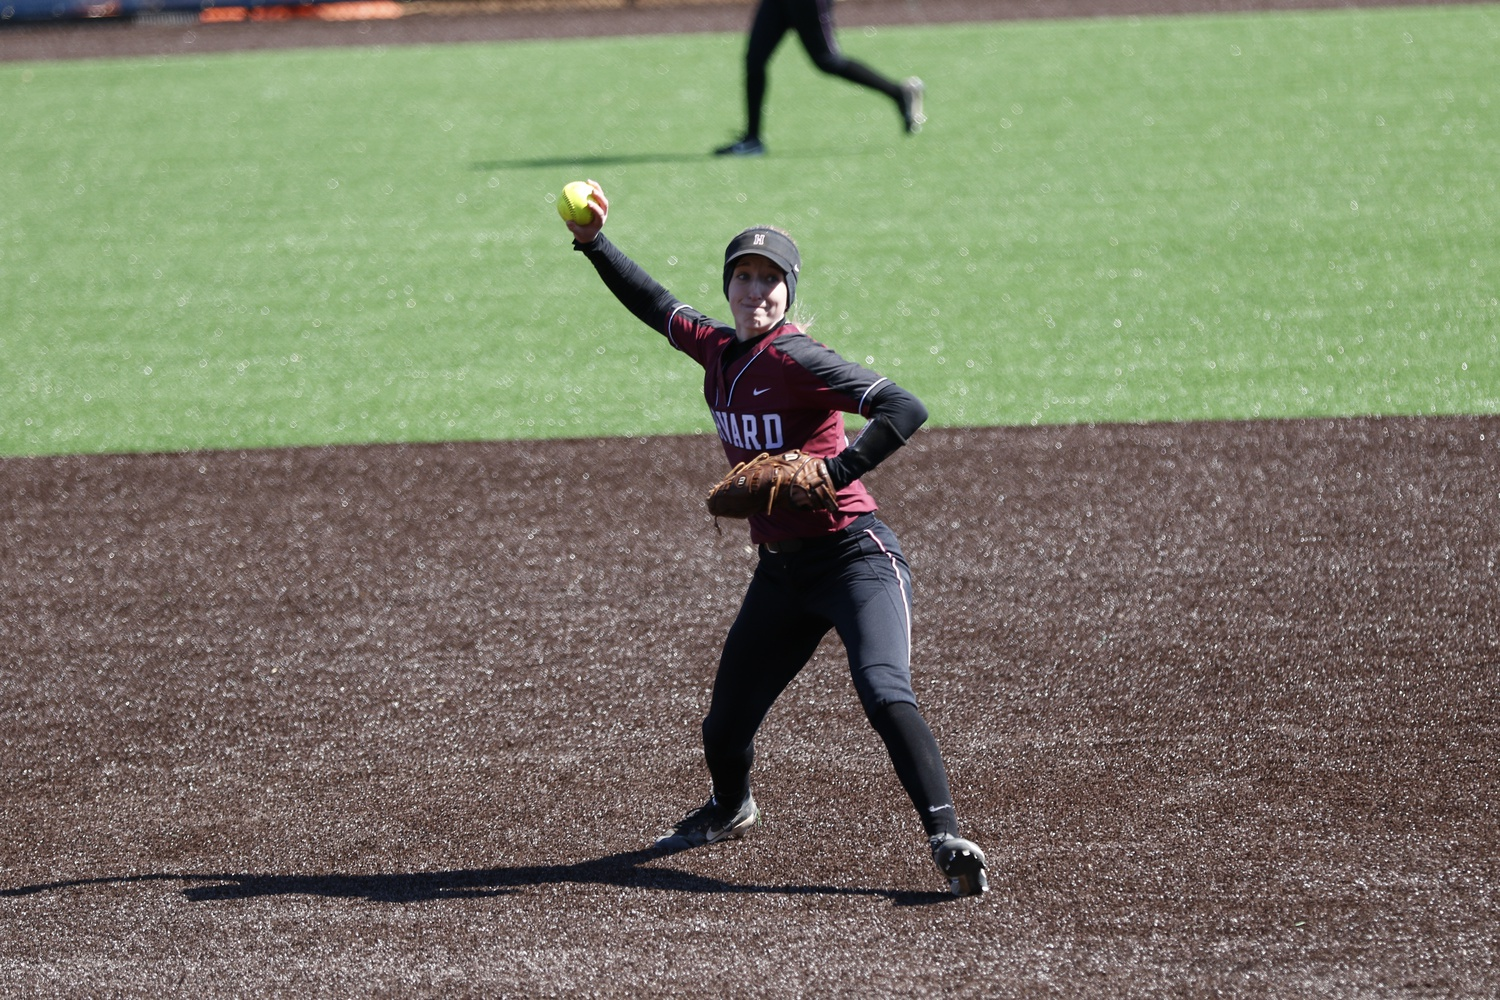 Rich, now a junior, has held down Harvard's starting shortstop job for her first three seasons in Cambridge.